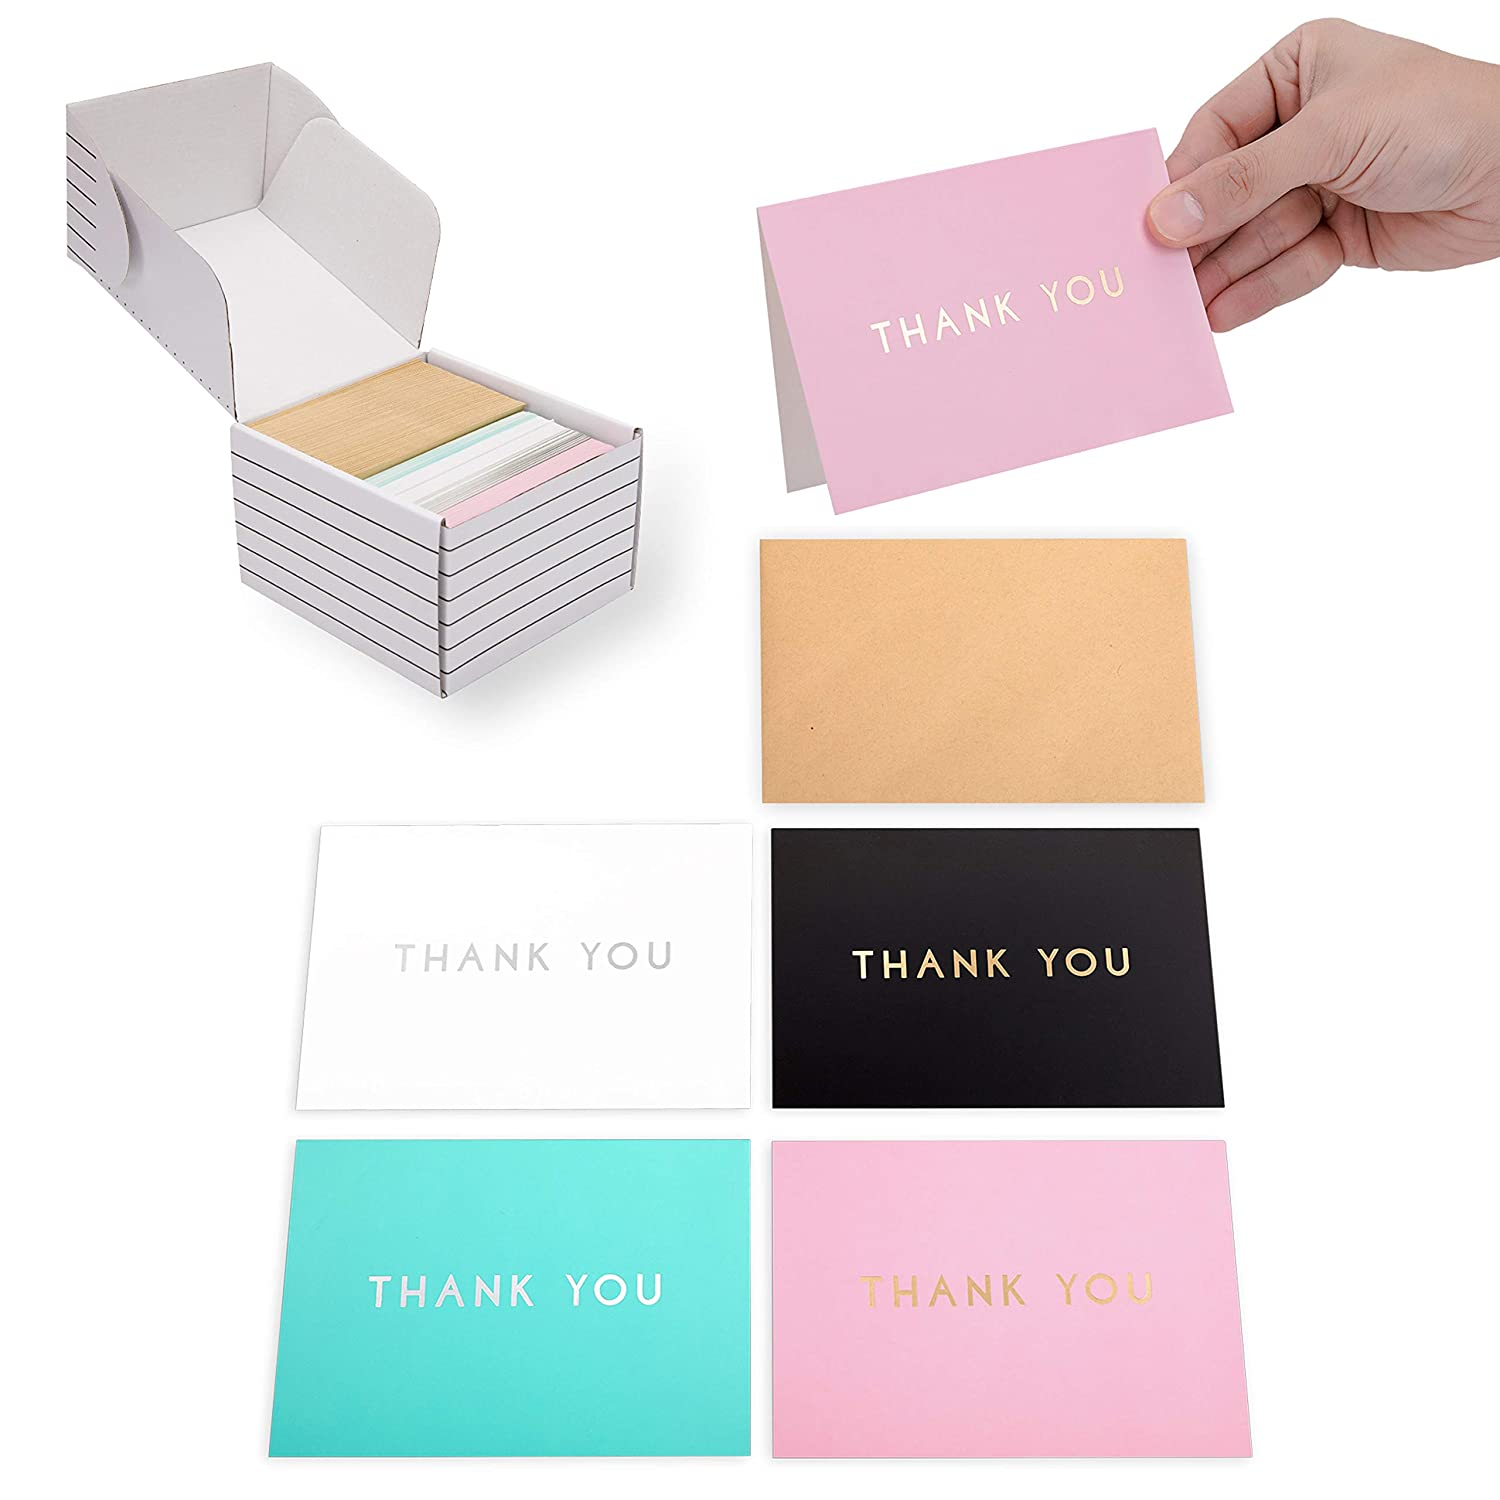 Outshine 100 Blank Thank You Cards with Envelopes Bulk Gratitude Note Cards in Storage Box 3.5 x 5 Cute Notecards for Wedding, Baby or Bridal Shower, Graduation Black, White, Blue and Pink